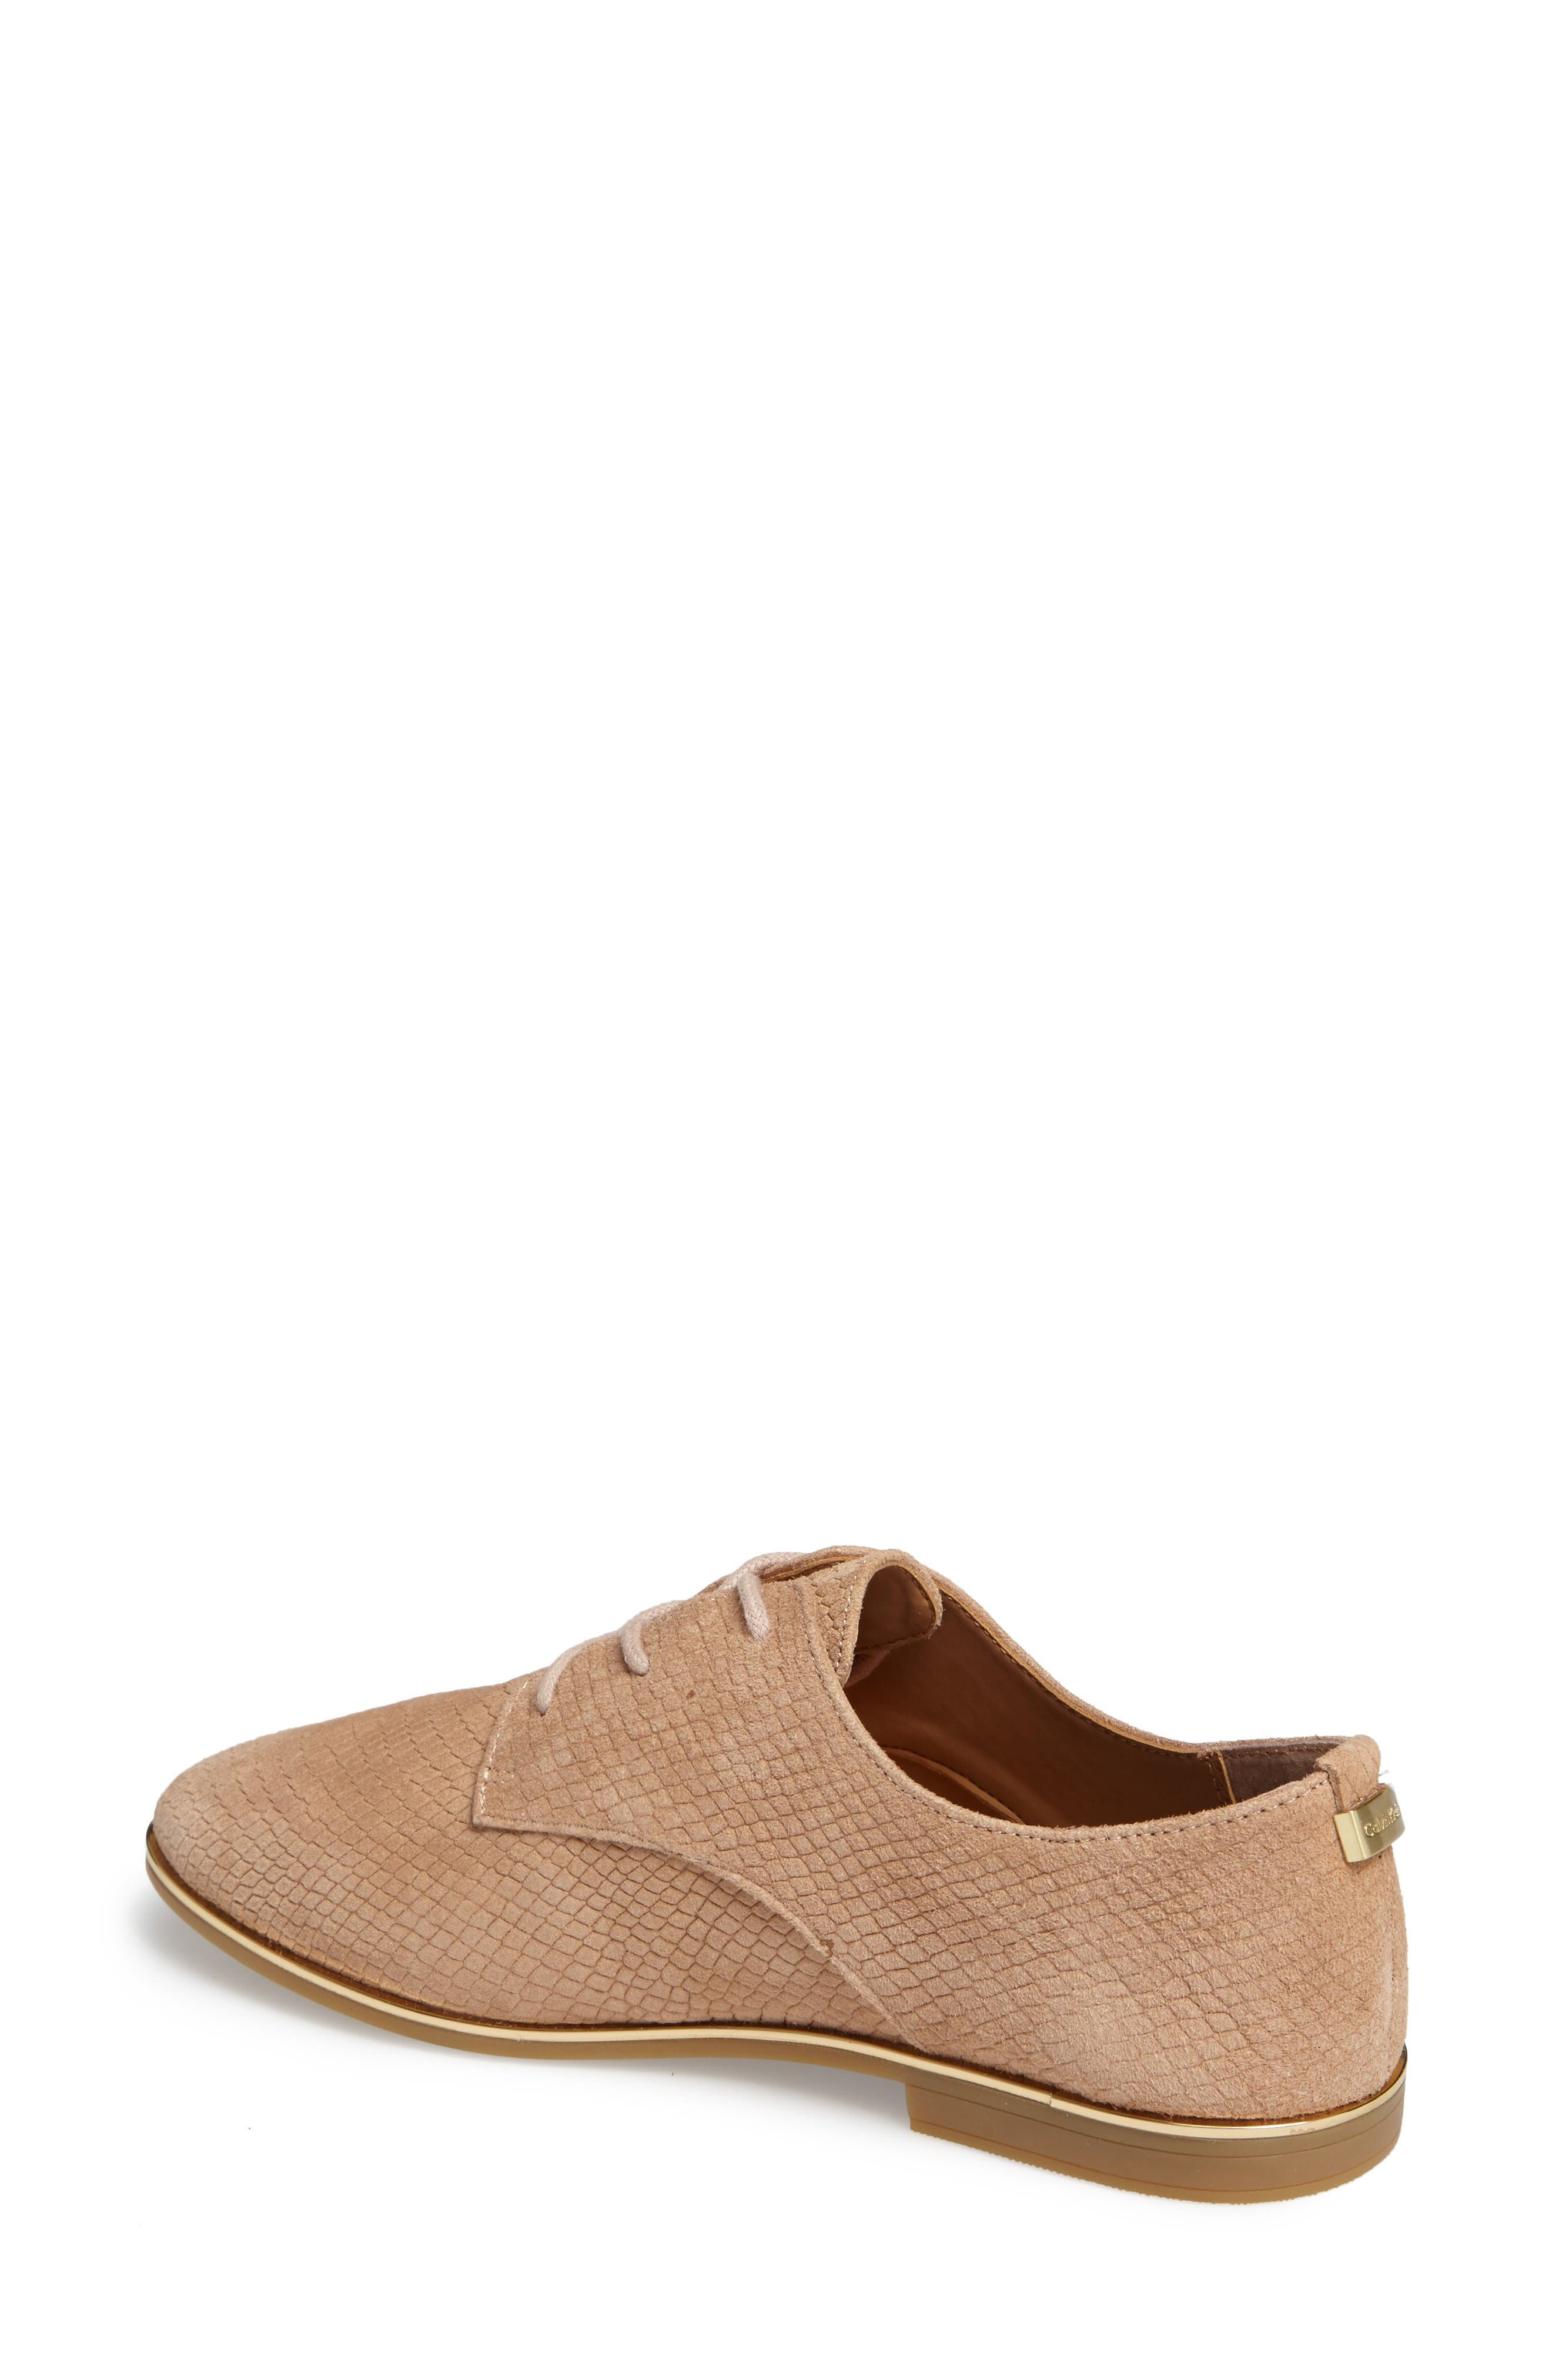 Cory Textured Oxford,                             Alternate thumbnail 2, color,                             Cocoon/ Warm Gold Nubuck